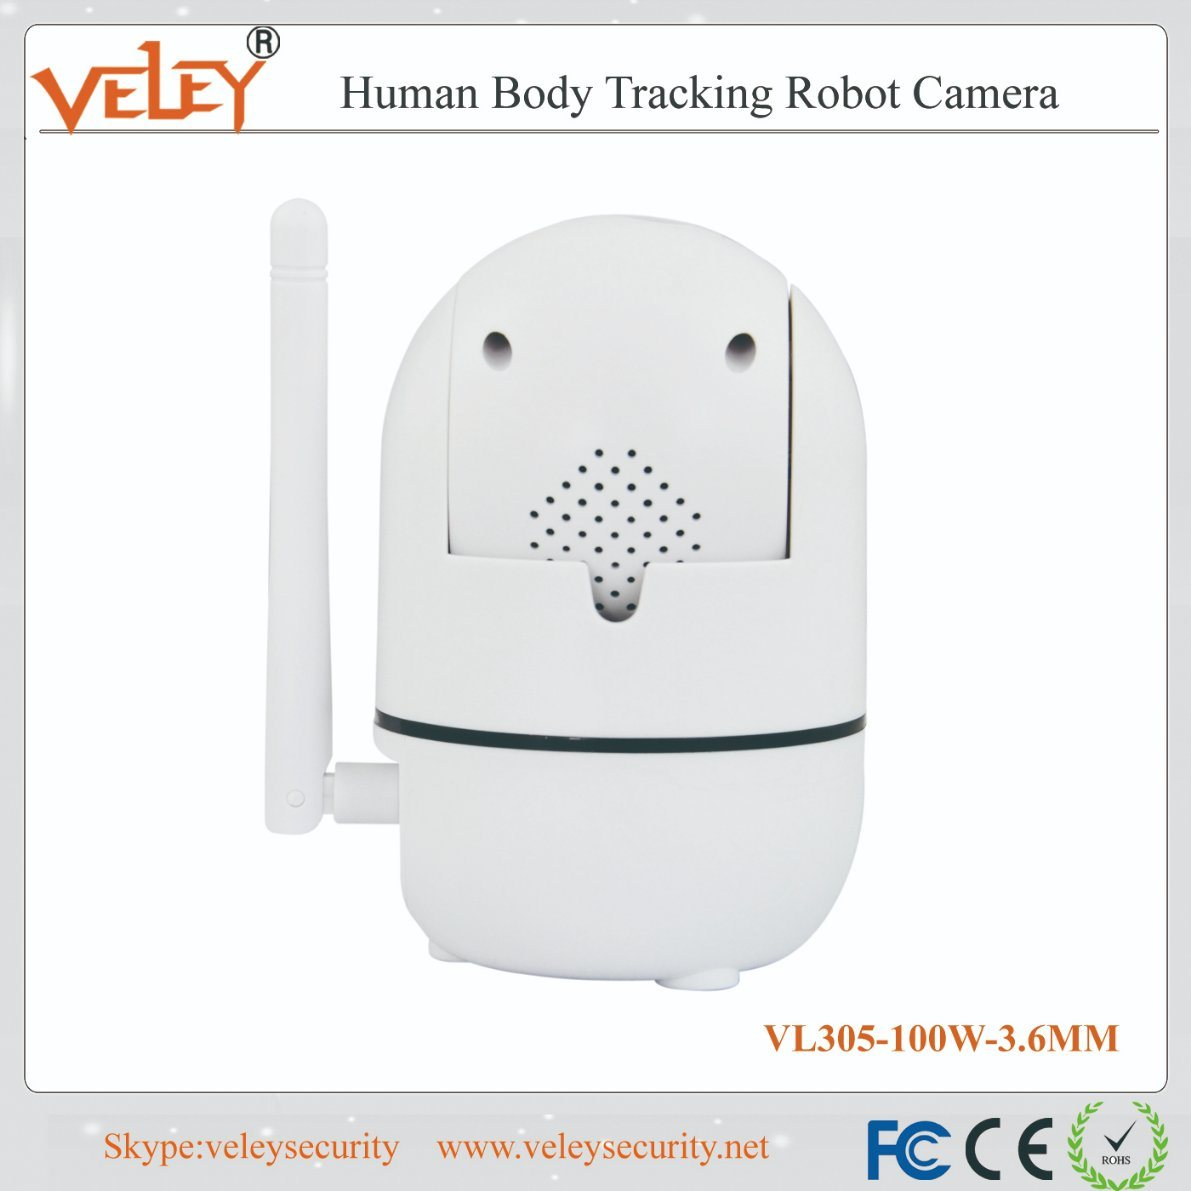 China Home Security Wireless Baby Camera Human Body Tracking Robot Rh  Veleysecurity En Made In China Com Baby Tracker Tracking Baby Development  In Womb